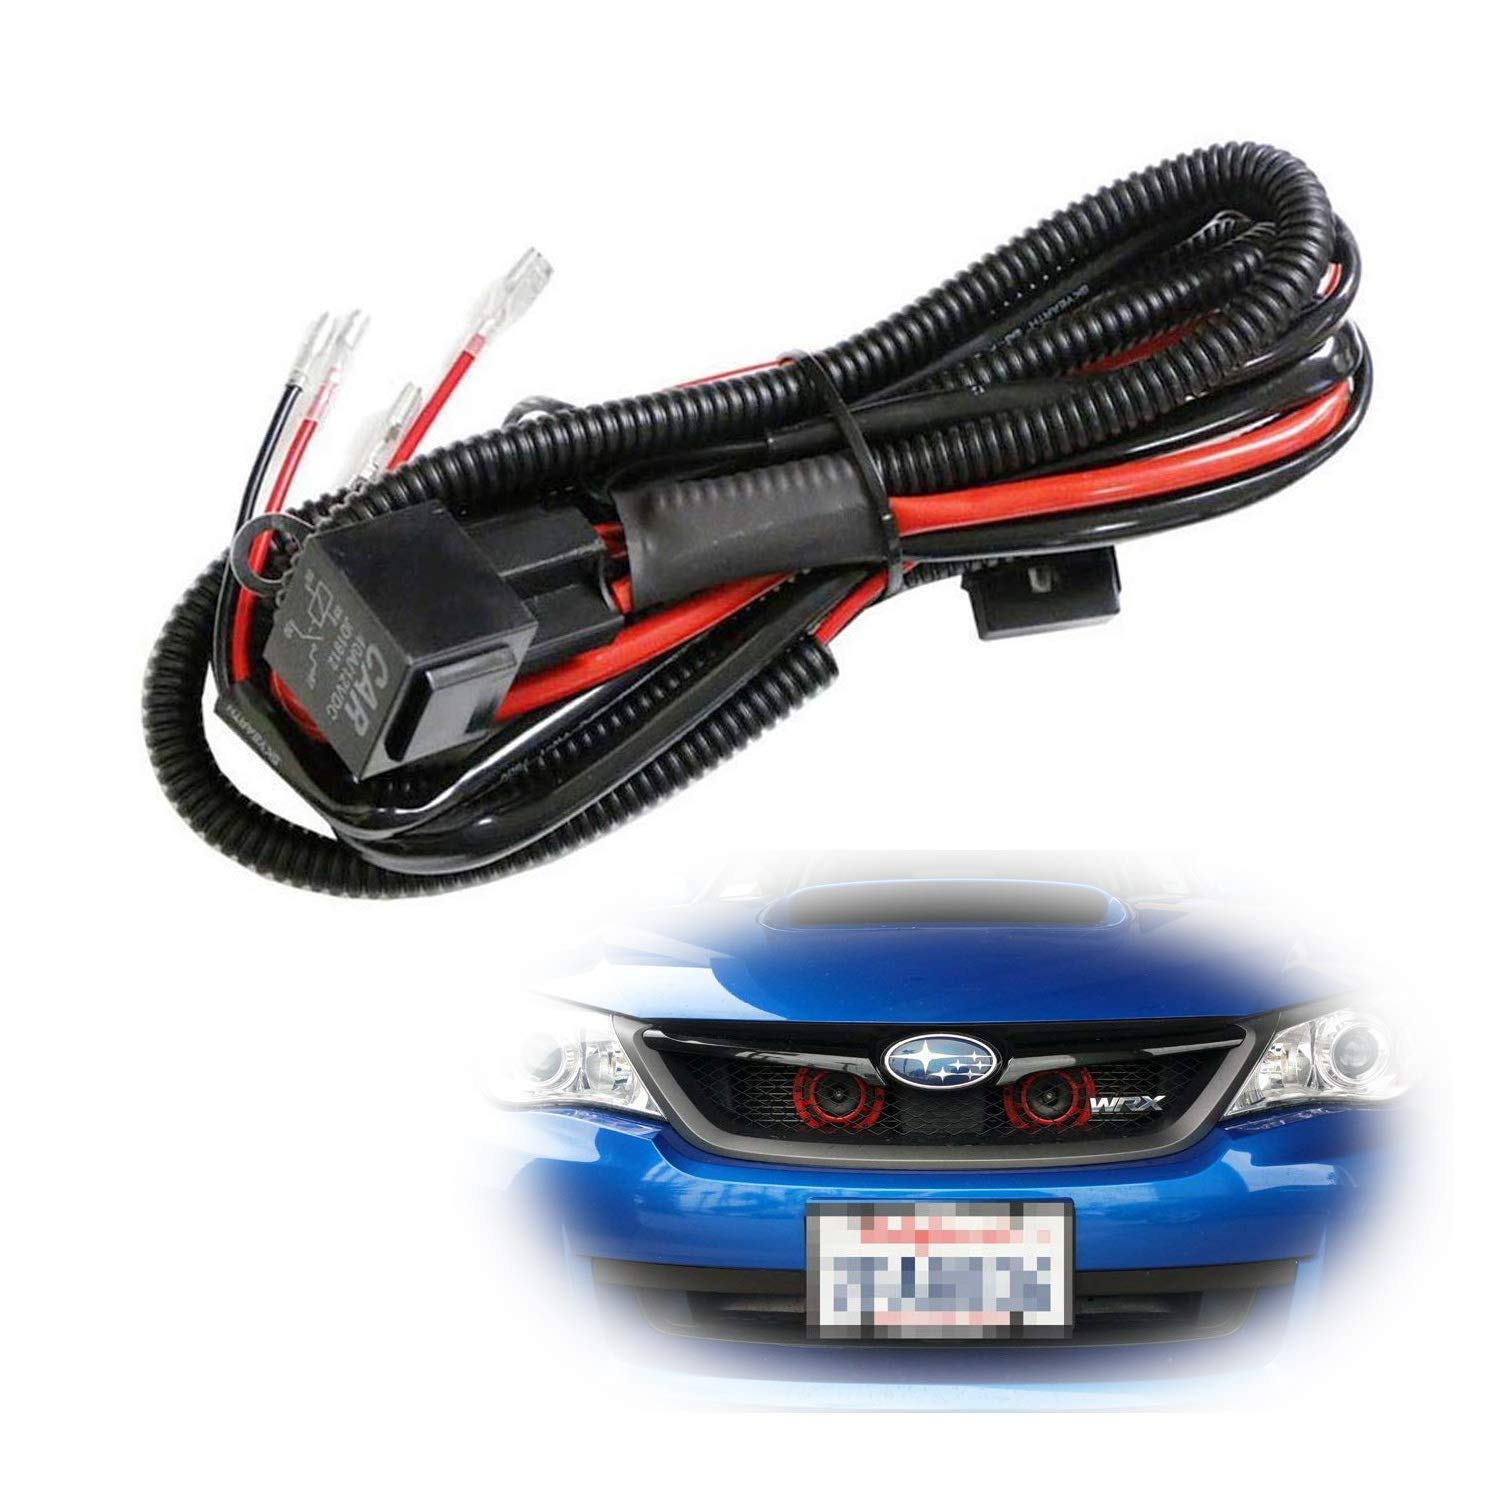 Ijdmtoy 1 12v Horn Wiring Harness Relay Kit For Car Fabrication Truck Grille Mount Blast Tone Horns Actual Not Included Automotive